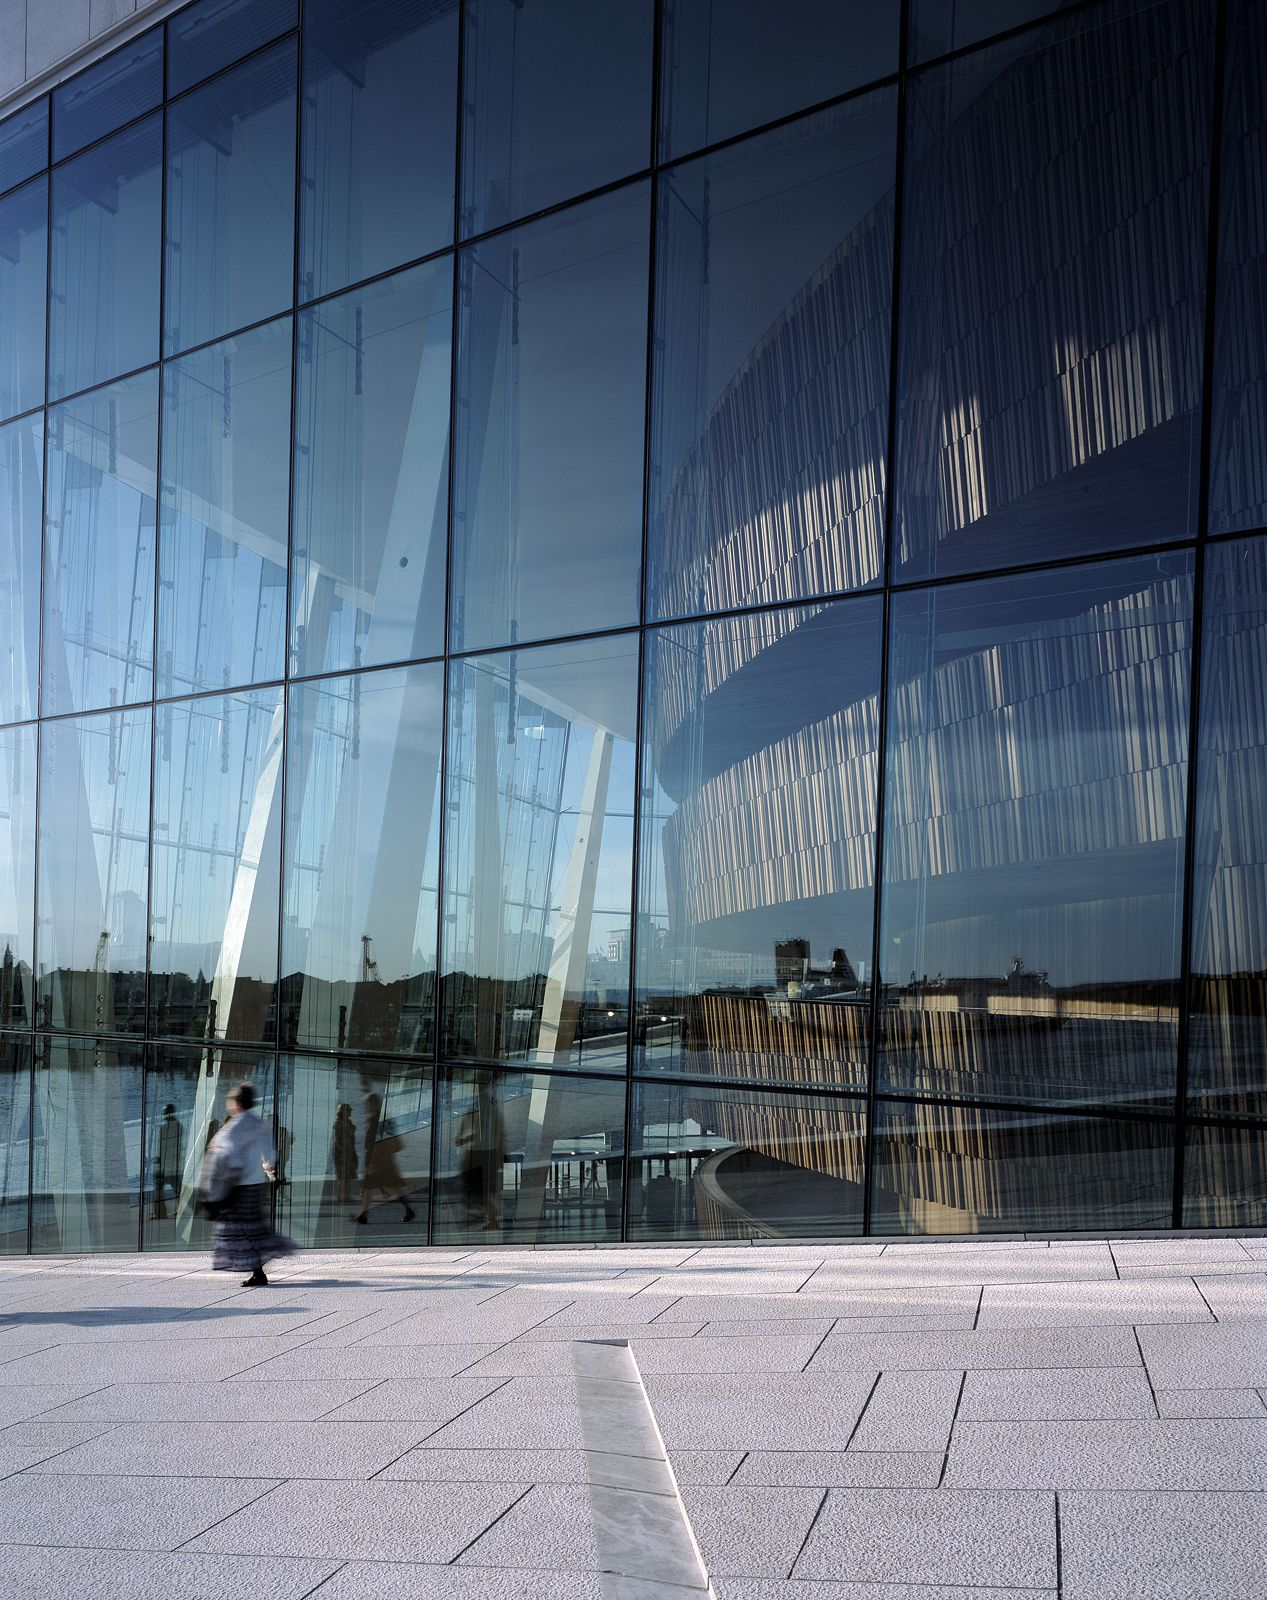 The Oslo Opera. Architect: Snøhetta AS. Photo: Helene Binet.